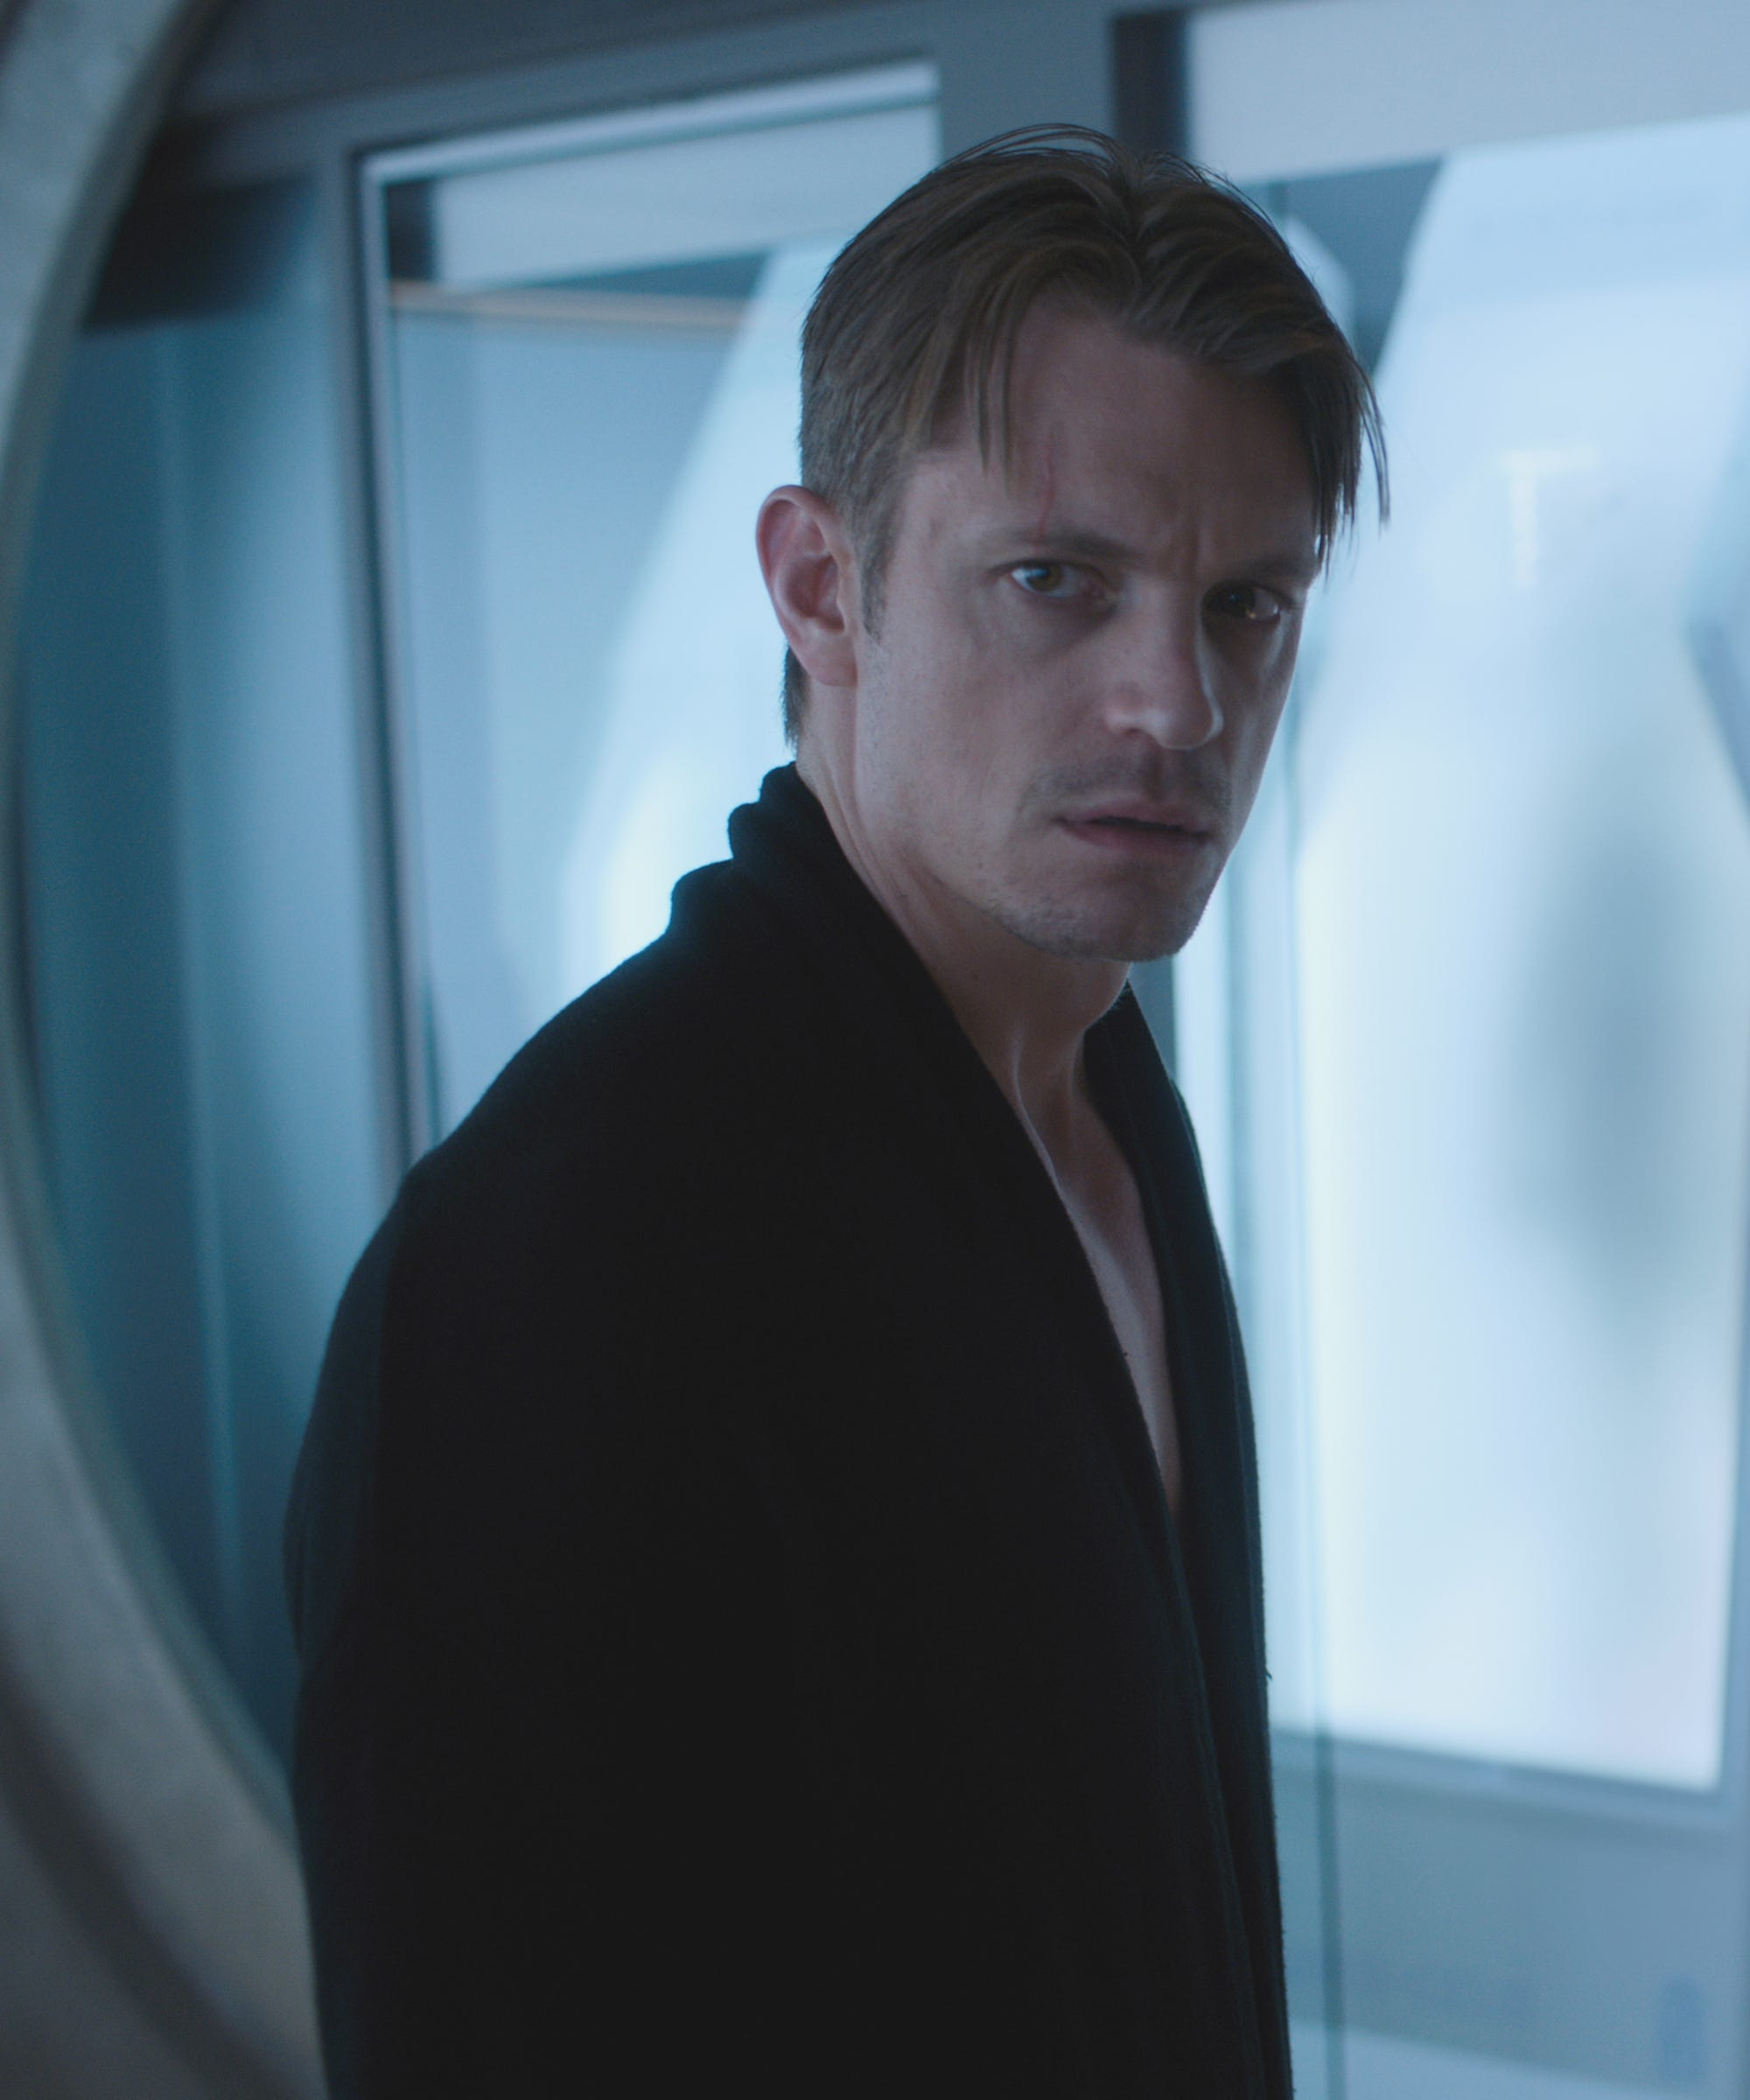 Altered Carbon Male Frontal altered carbon review of netflix series complex plot